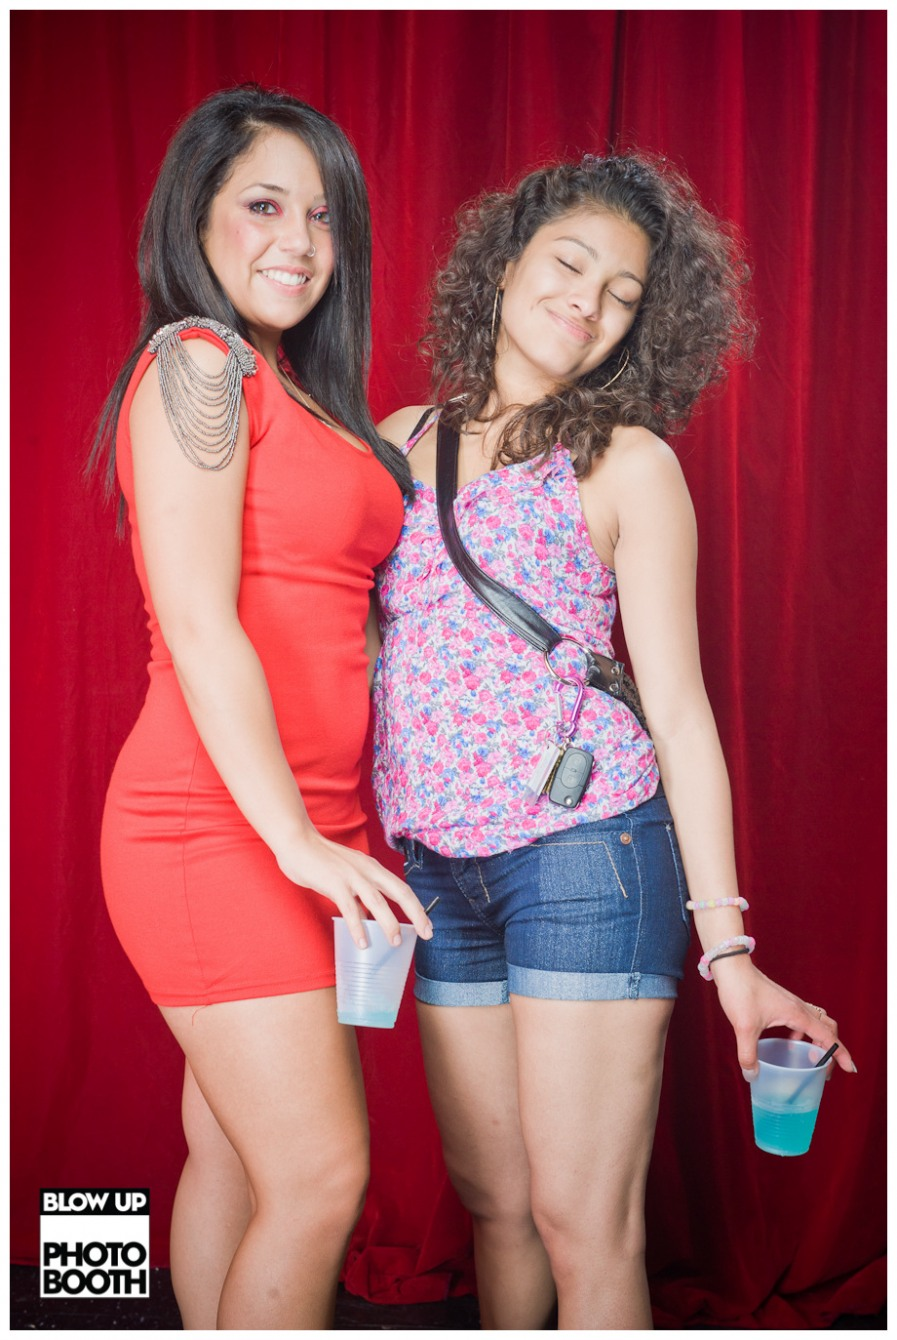 blow_up_8-27-2011-3306